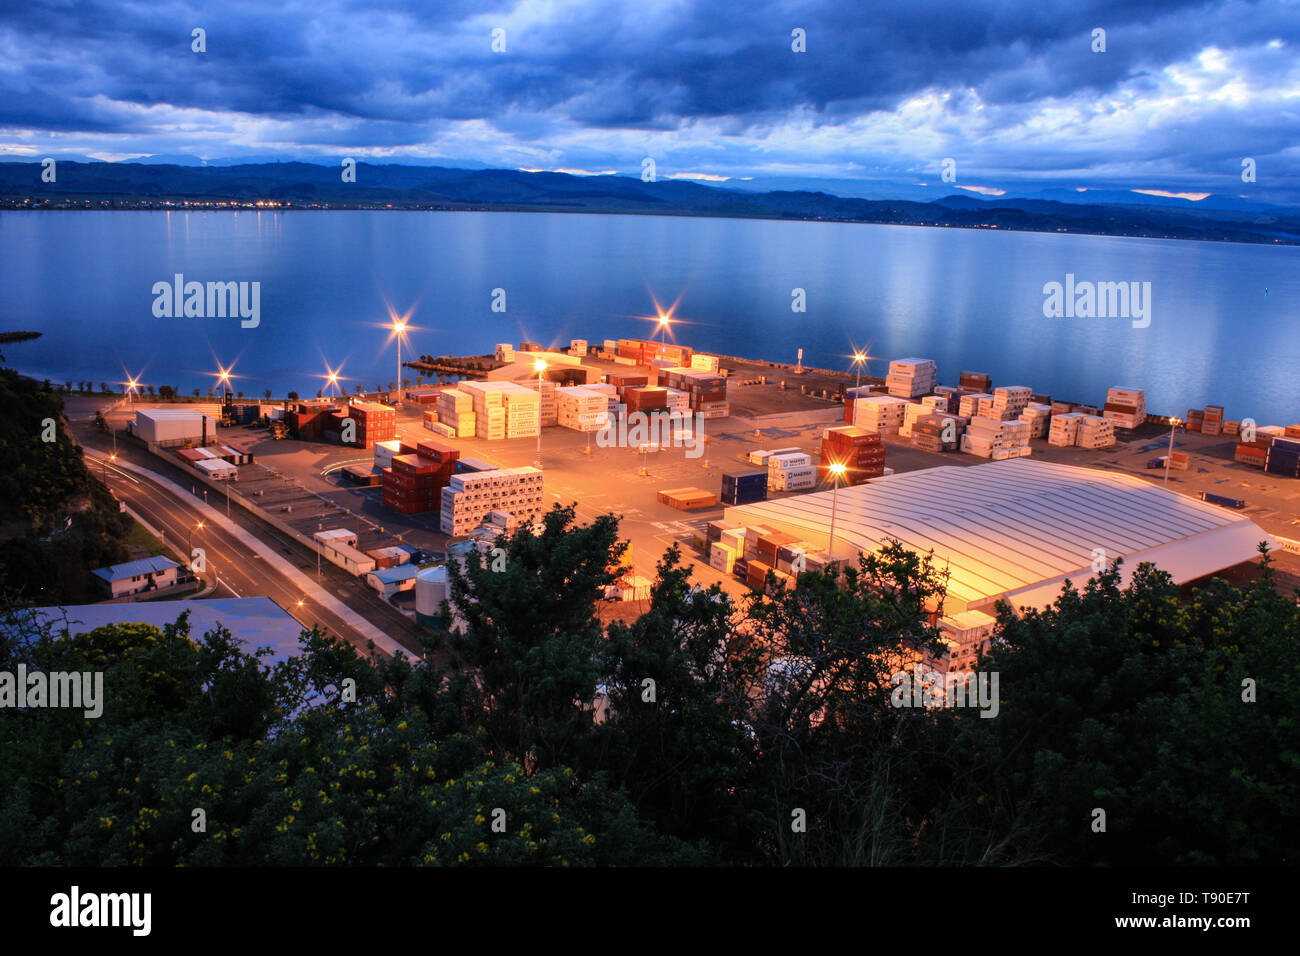 Napier, New Zealand - September 07th, 2010: Panoramic view on the container terminal in the port of Napier. - Stock Image